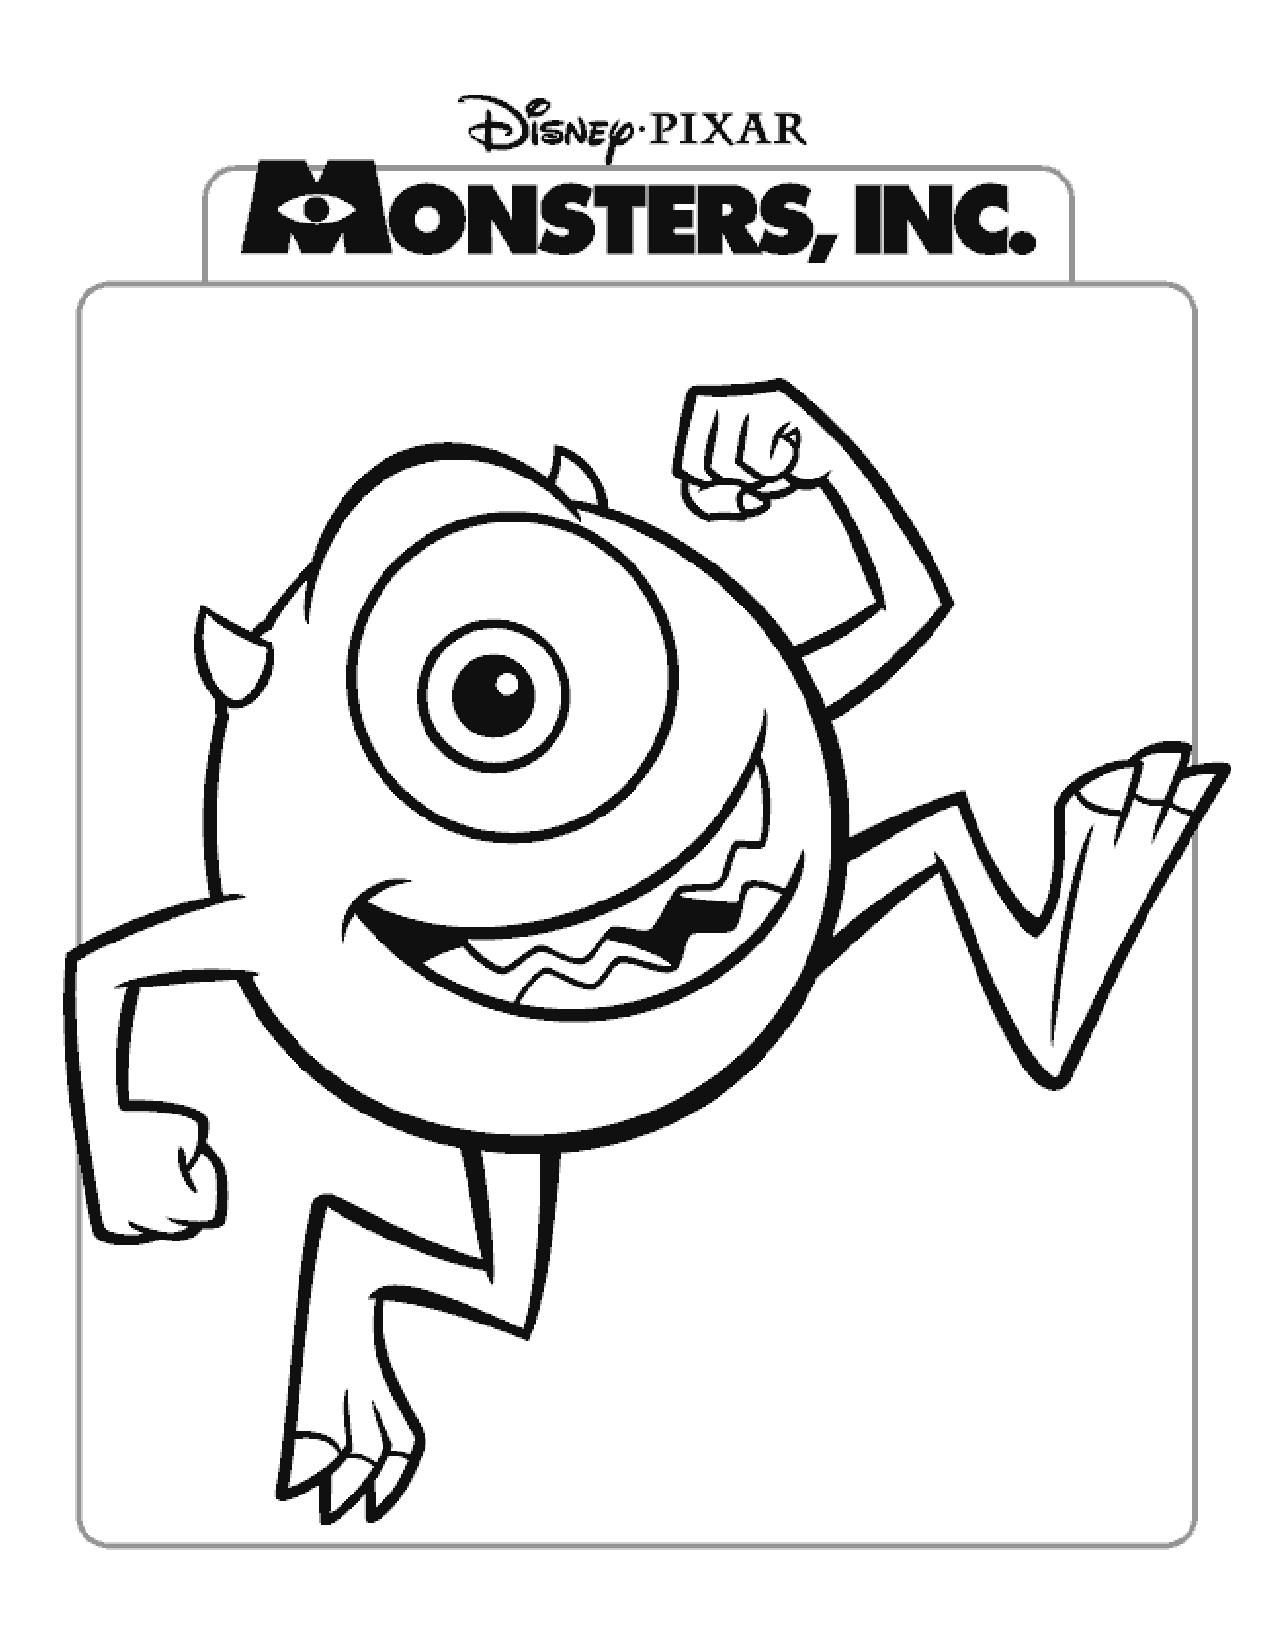 Monsters, Inc. | Disney Coloring Pages: Movie Covers | Pinterest